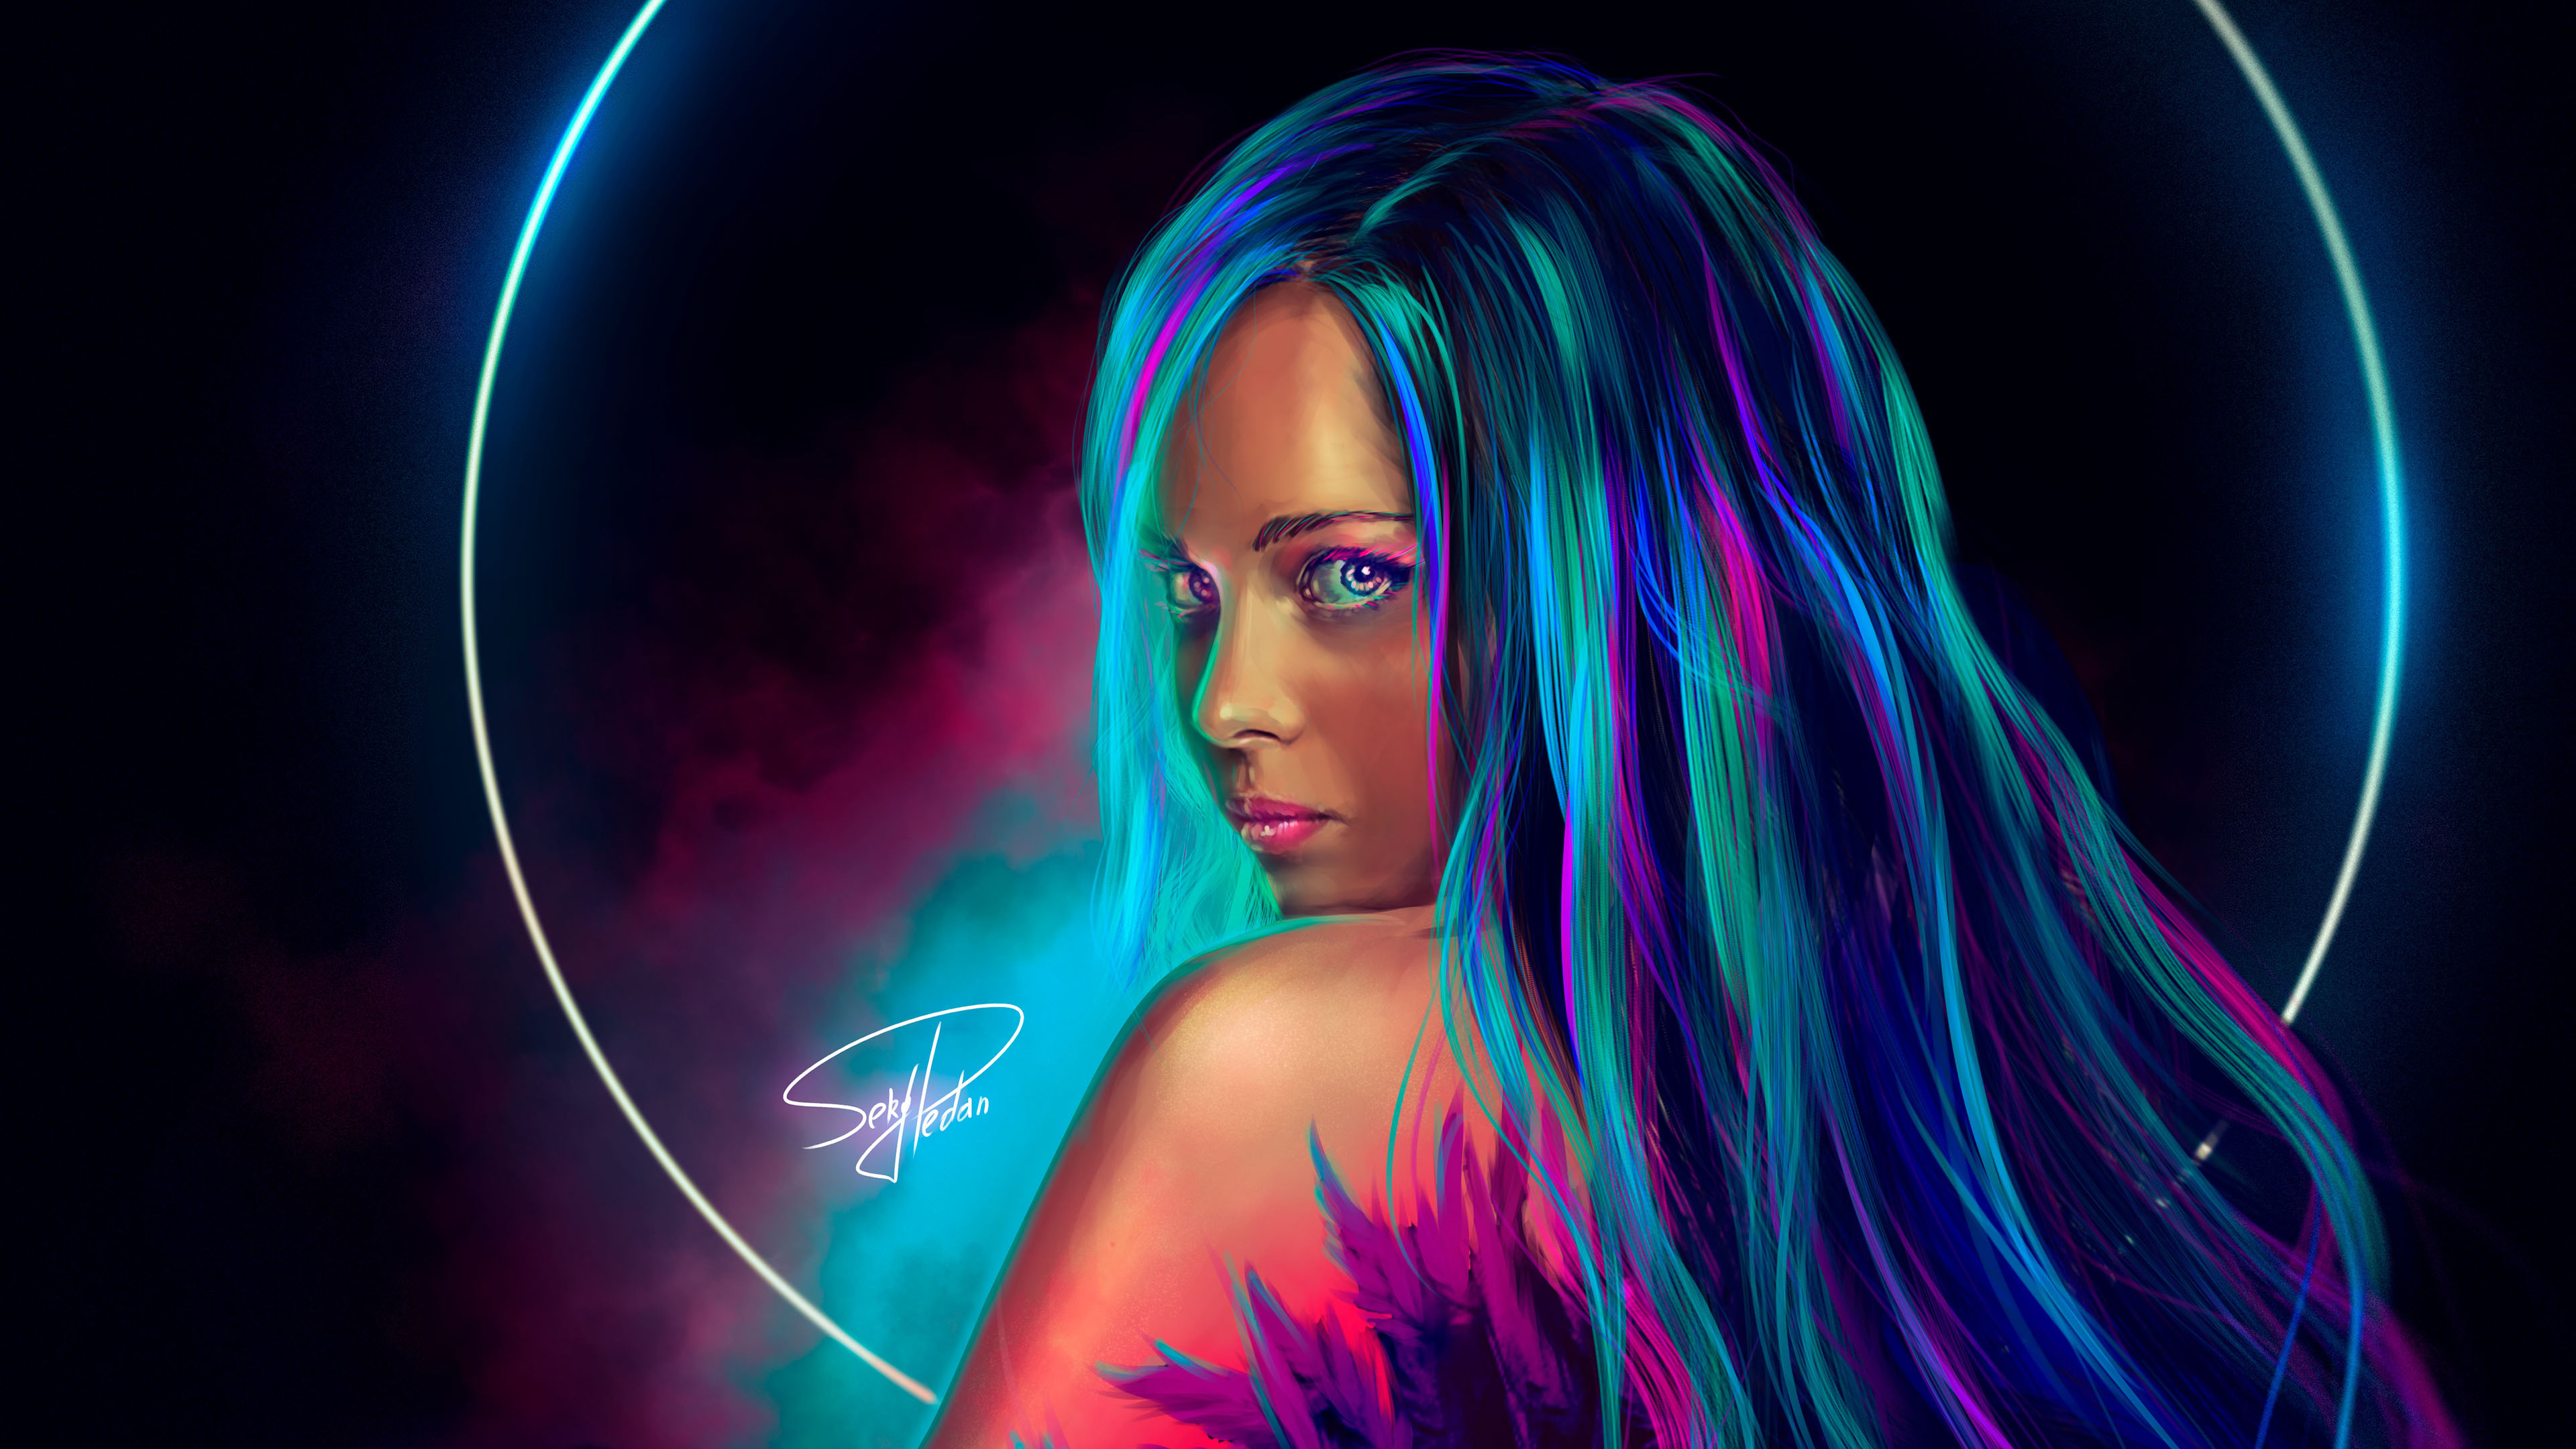 Wallpaper 4k Neon Girl Digital Art 4k 4k Wallpapers Artist Wallpapers Artwork Wallpapers Behance Wallpapers Digital Art Wallpapers Hd Wallpapers Neon Wallpapers